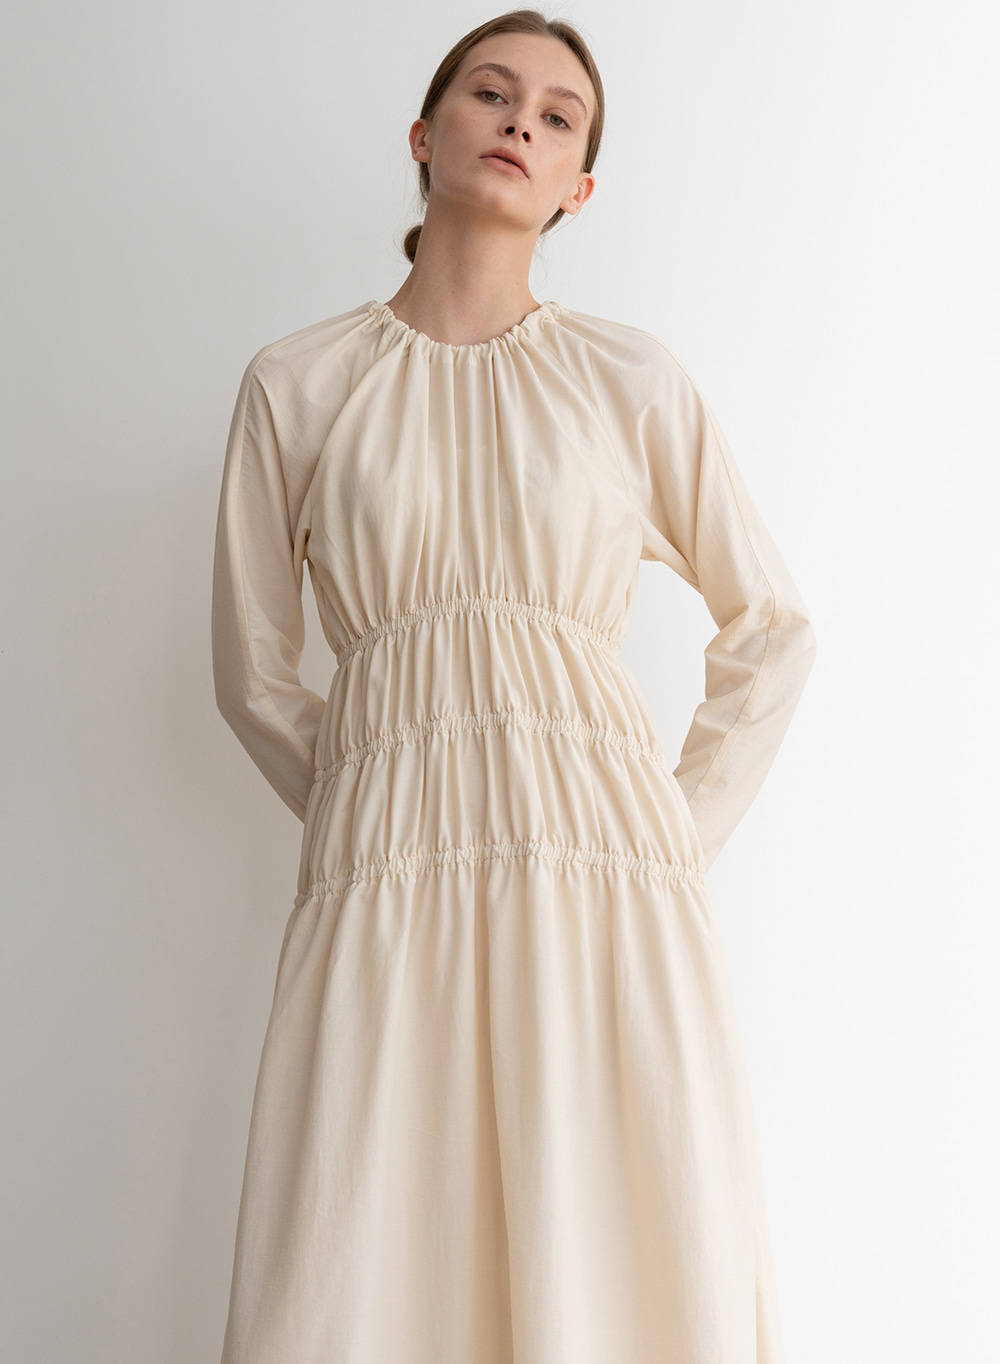 [ESSENTIAL] Shirring Dress Cream